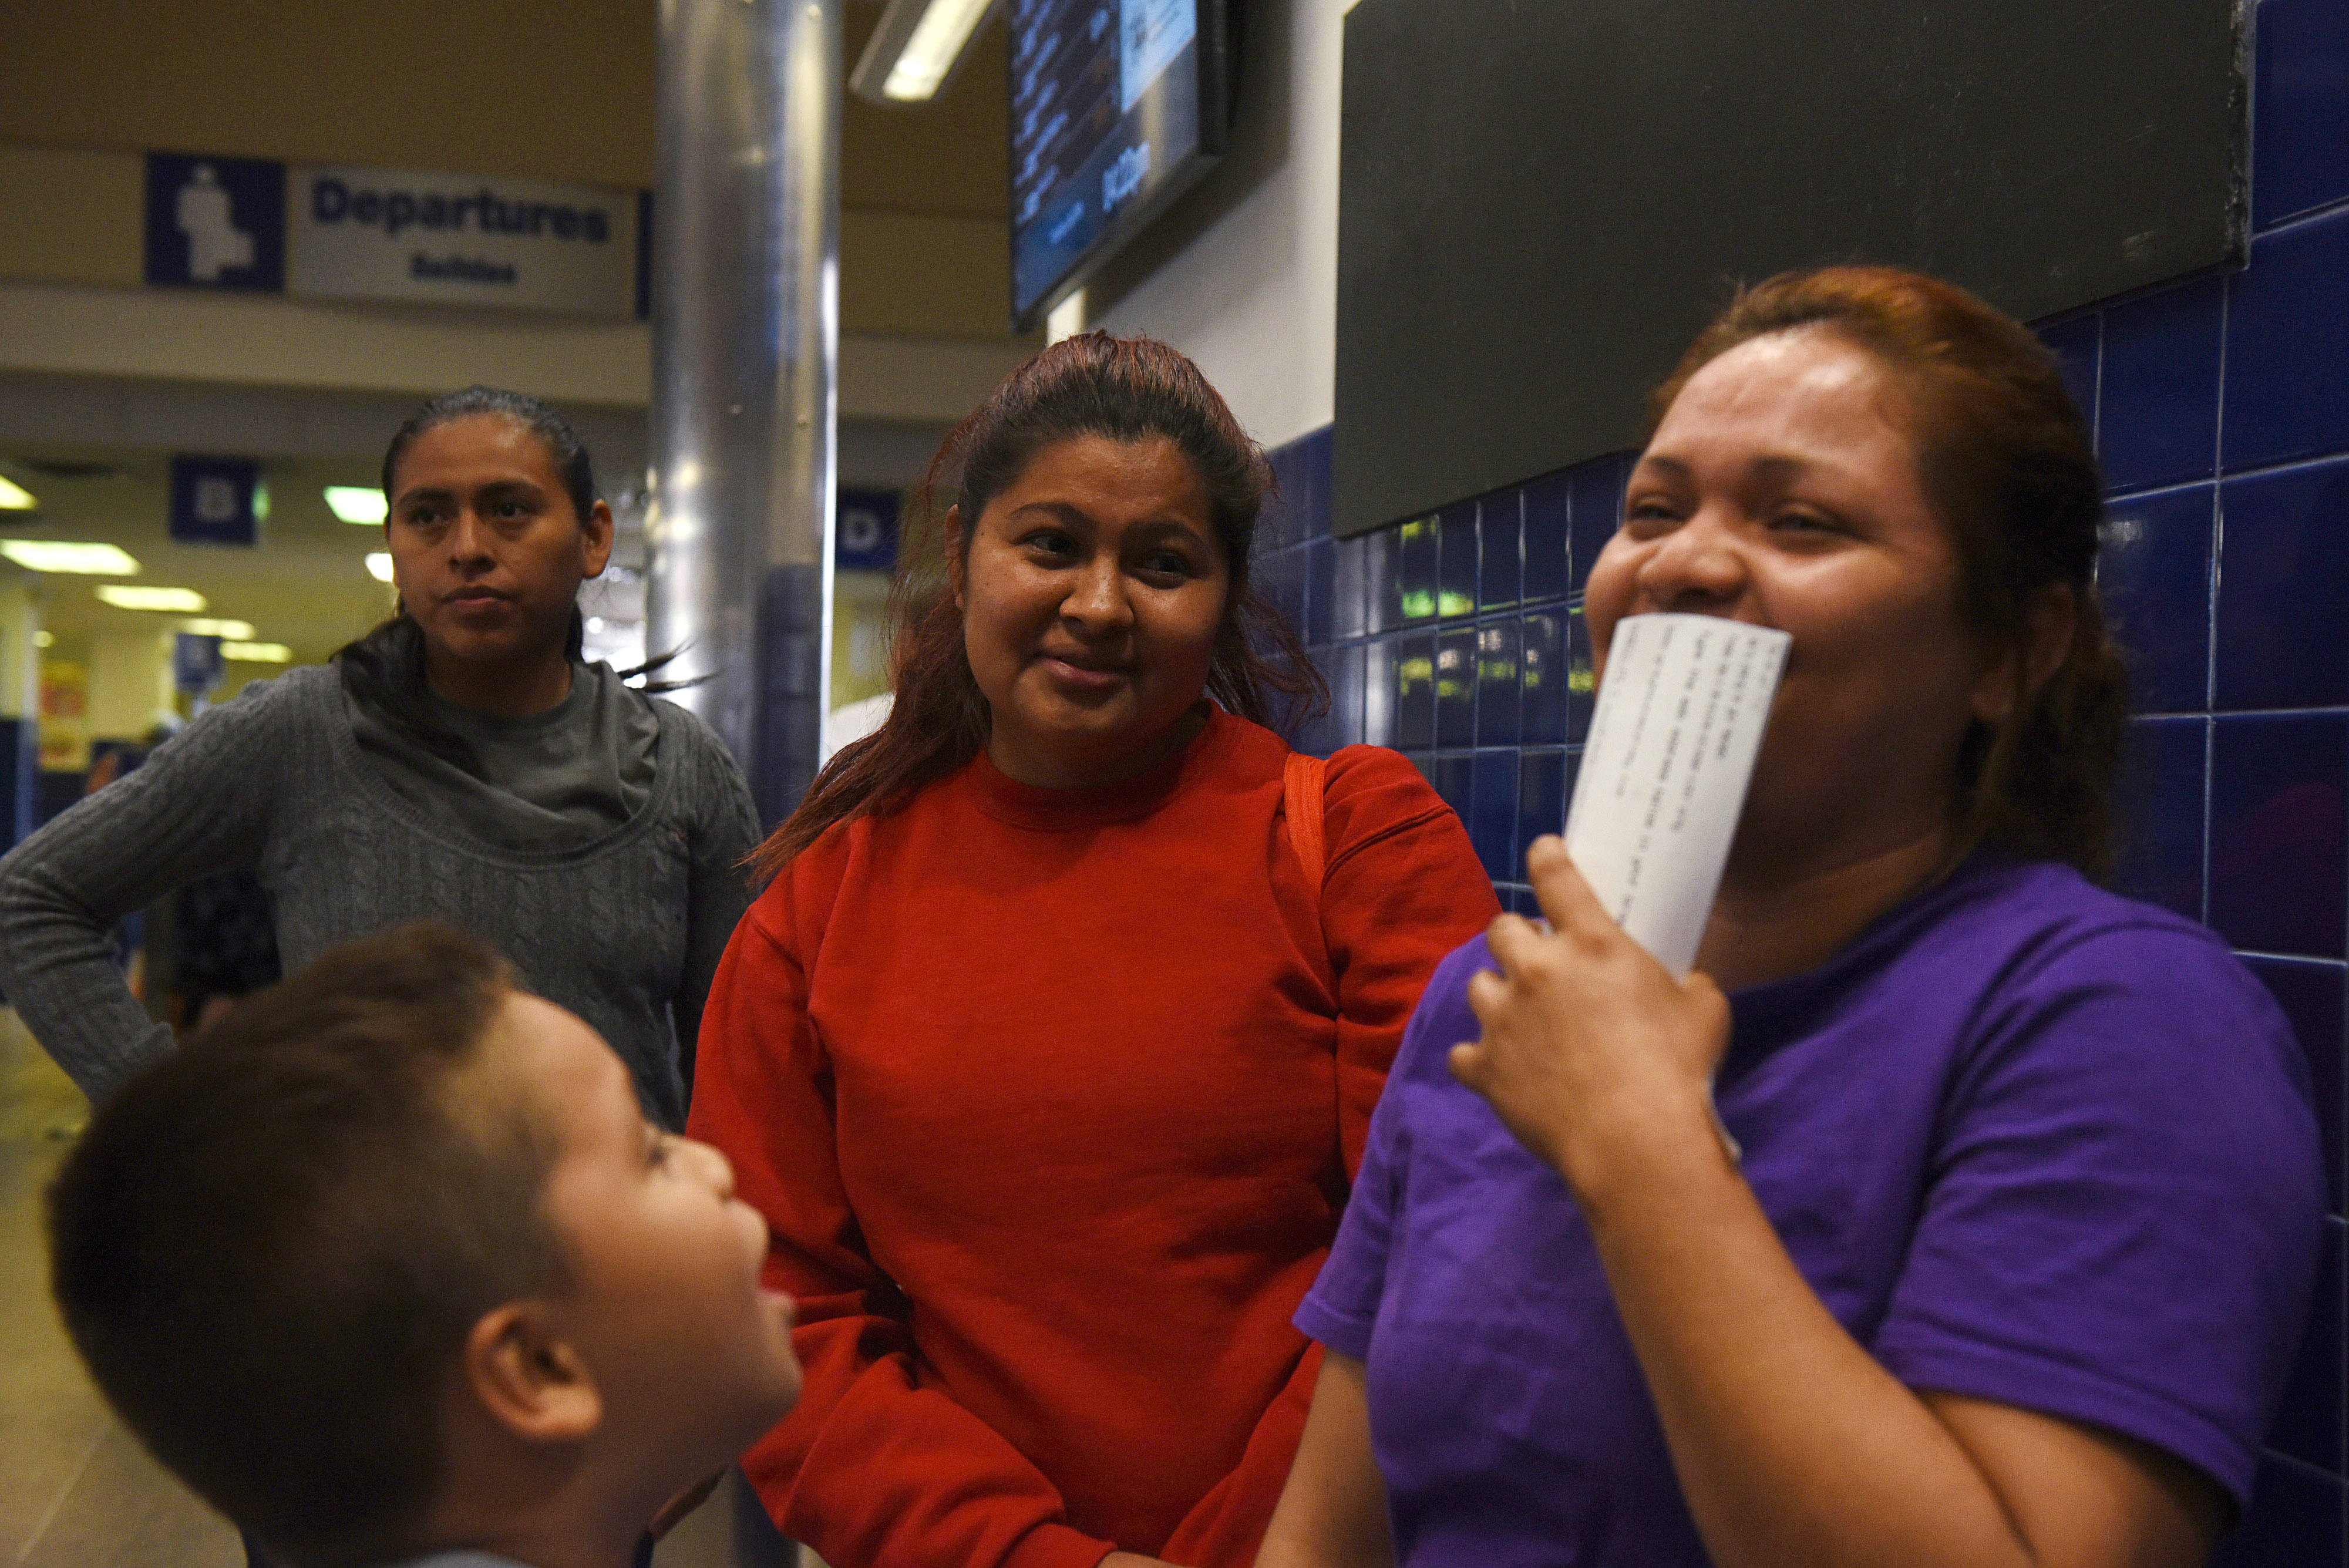 After being released from detention centers, undocumented immigrants wait for buses, which will take them to various cities across the country, at a Greyhound bus station in San Antonio